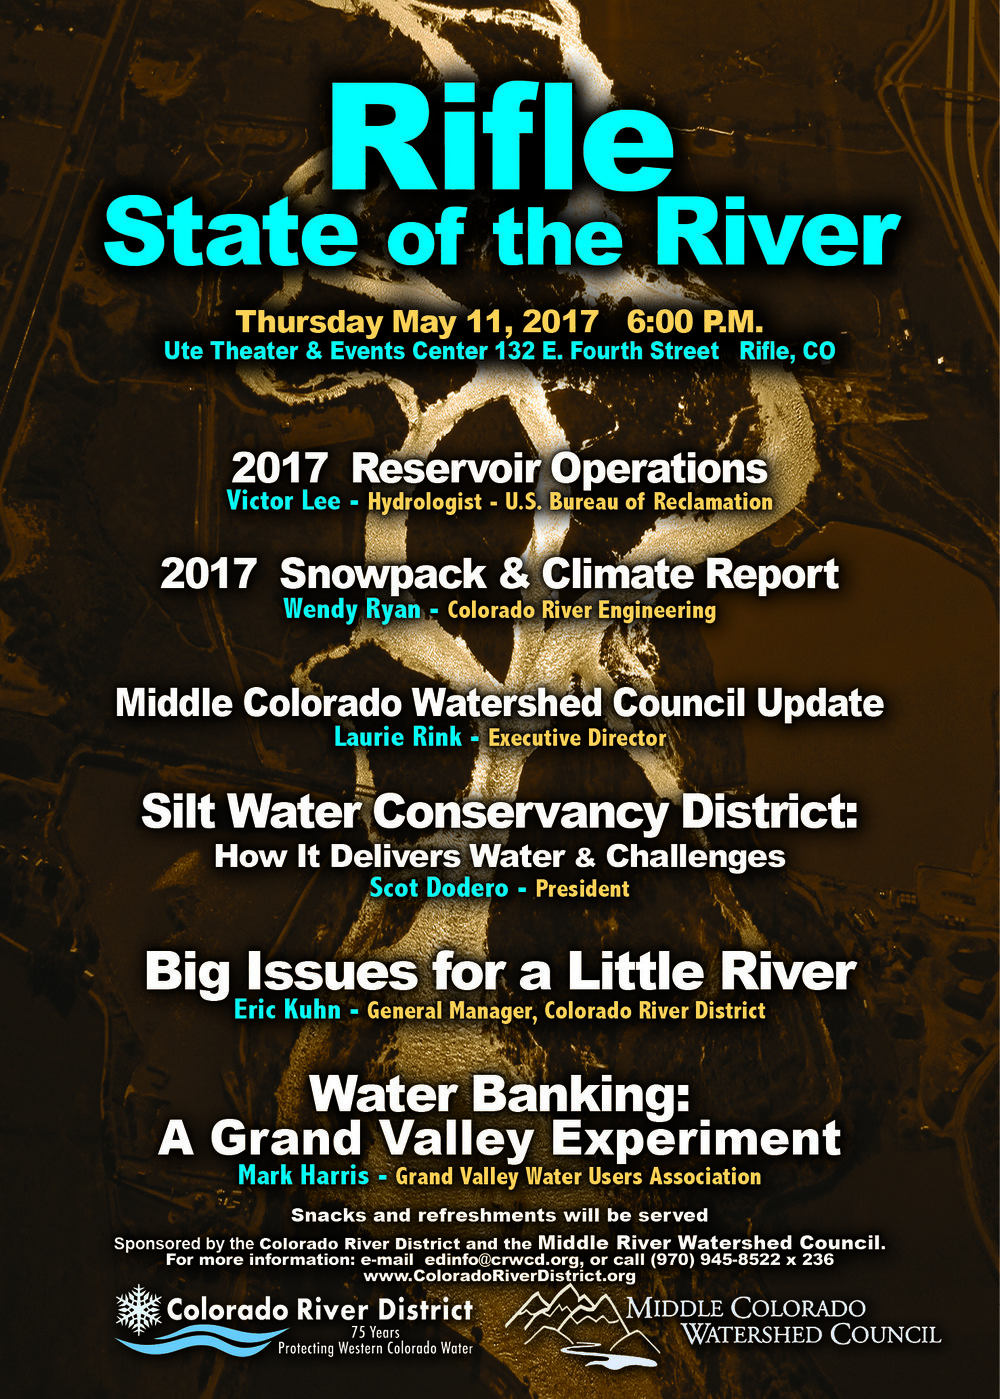 Event is free to the public! Please visit www.ColoradoRiverDistrict.org for more information about the State of the River